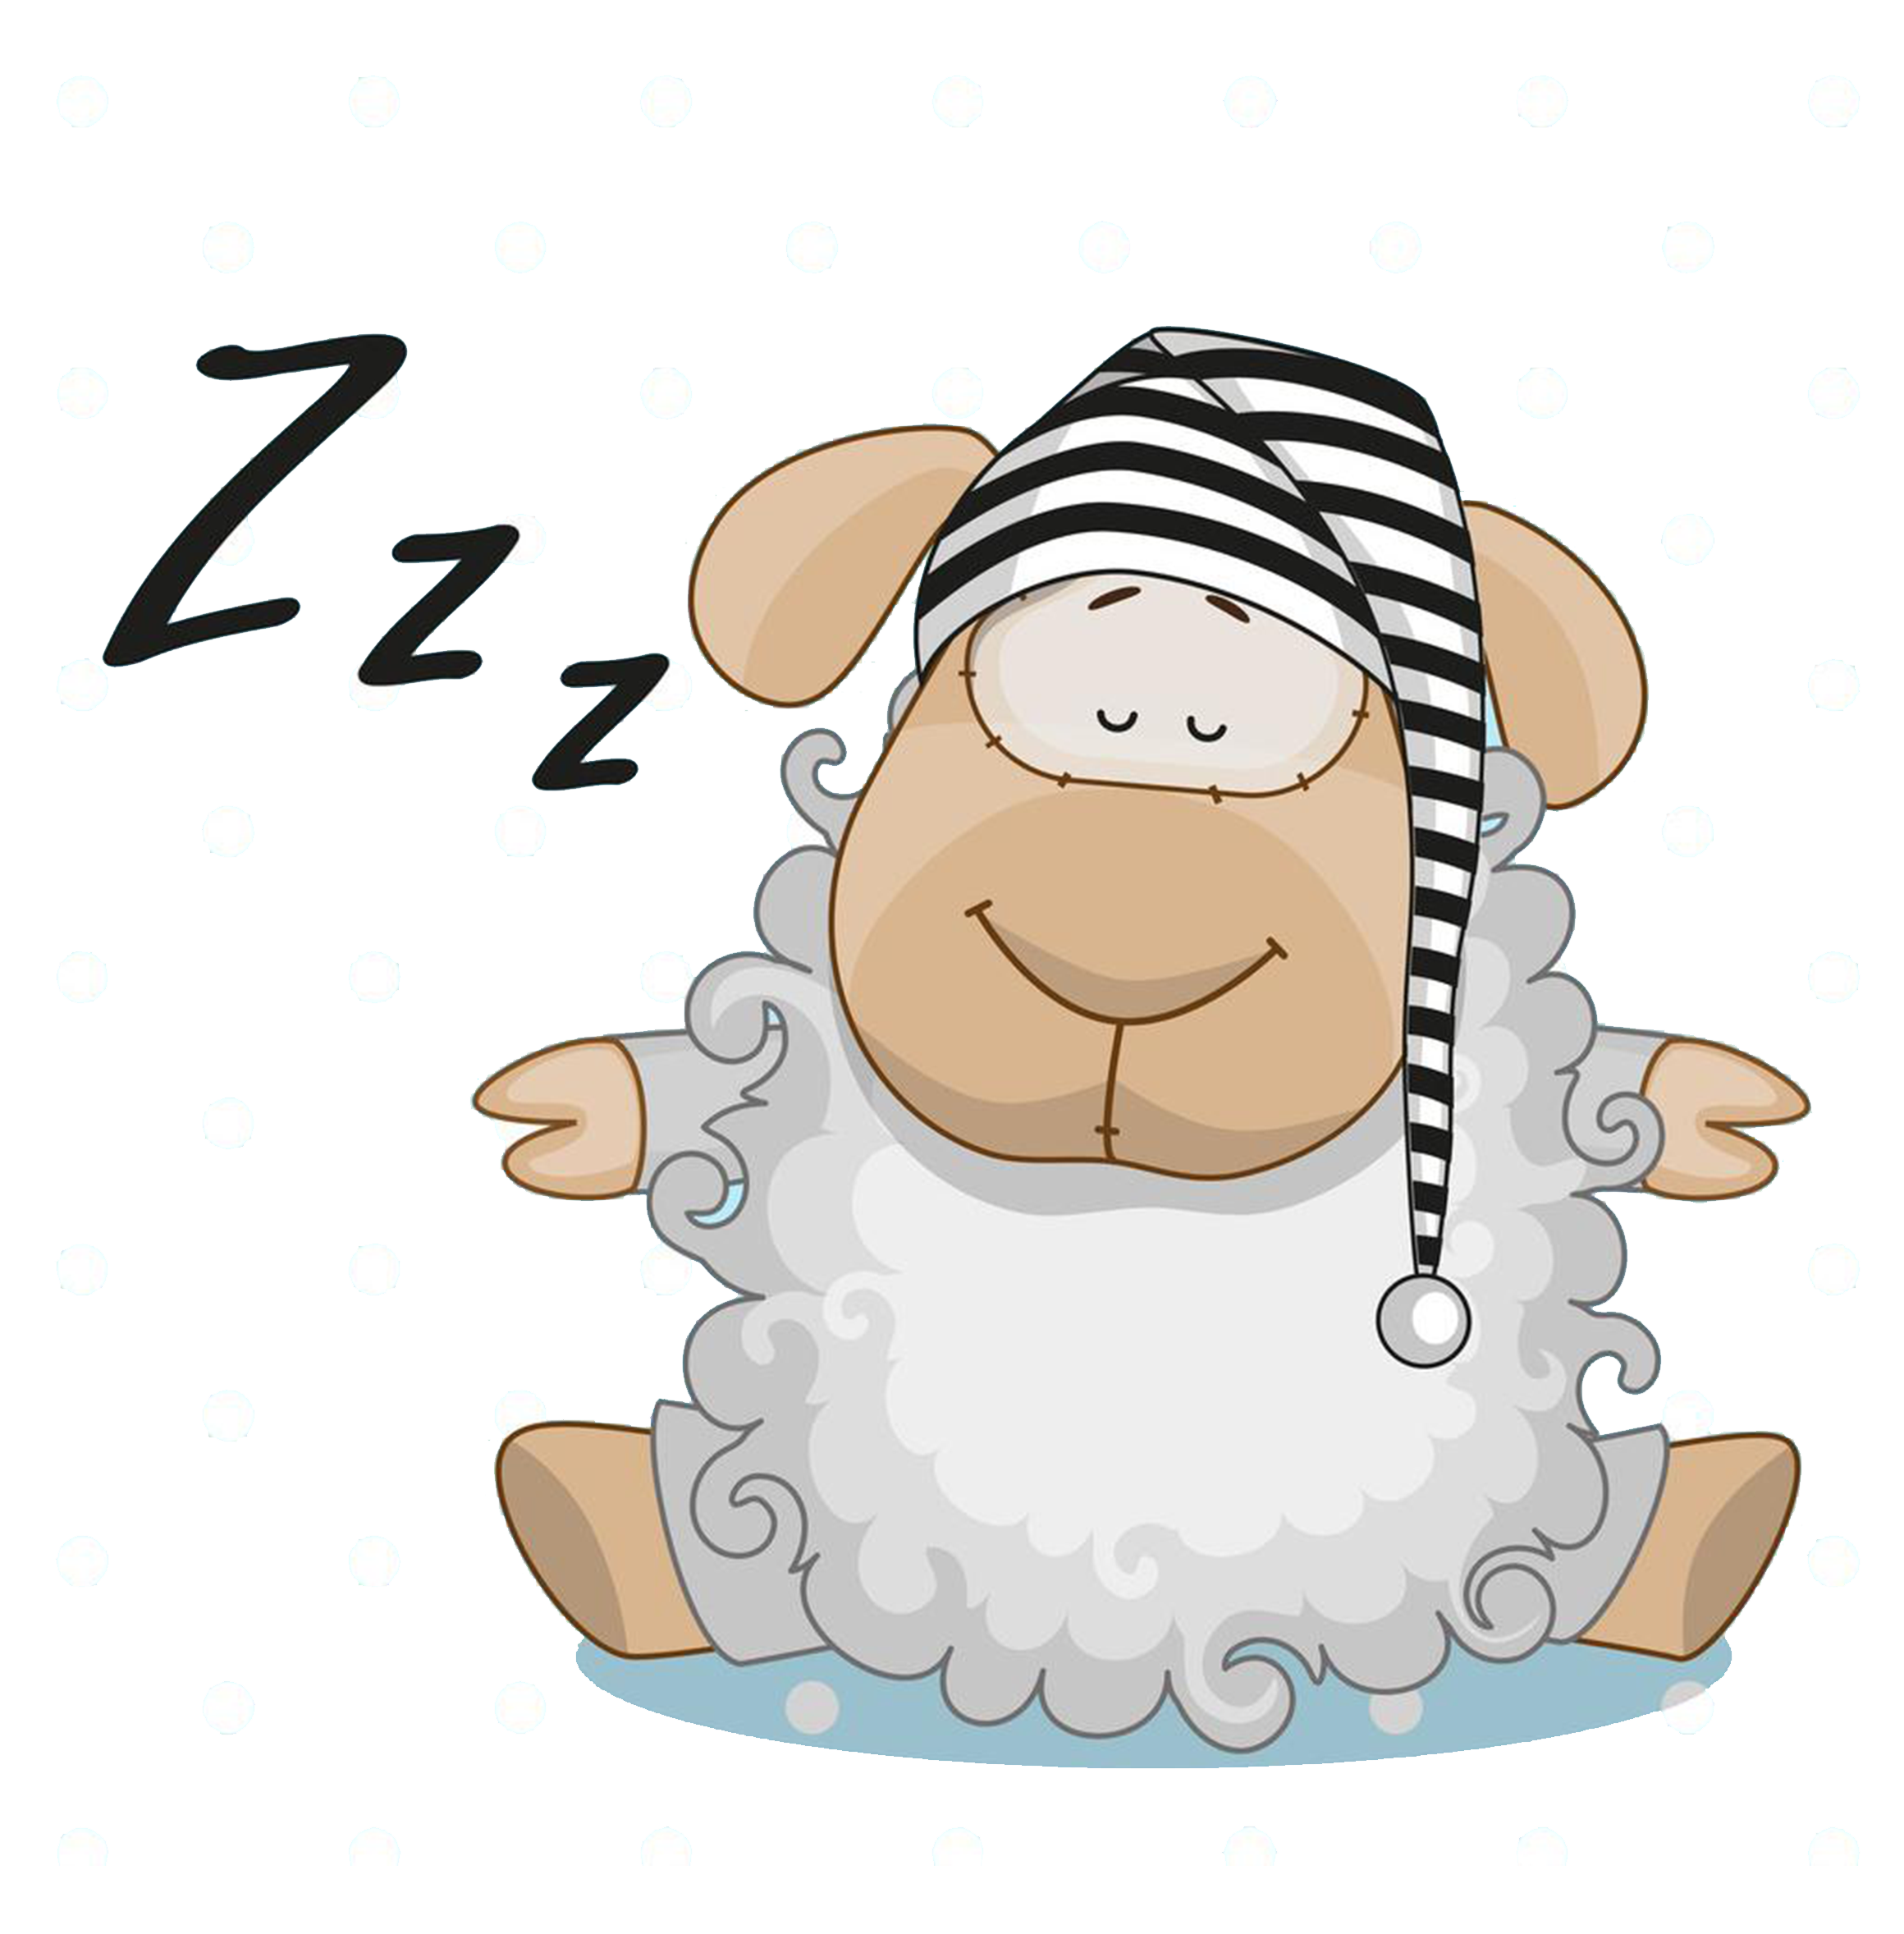 Lamb clipart sleeping, Lamb sleeping Transparent FREE for.